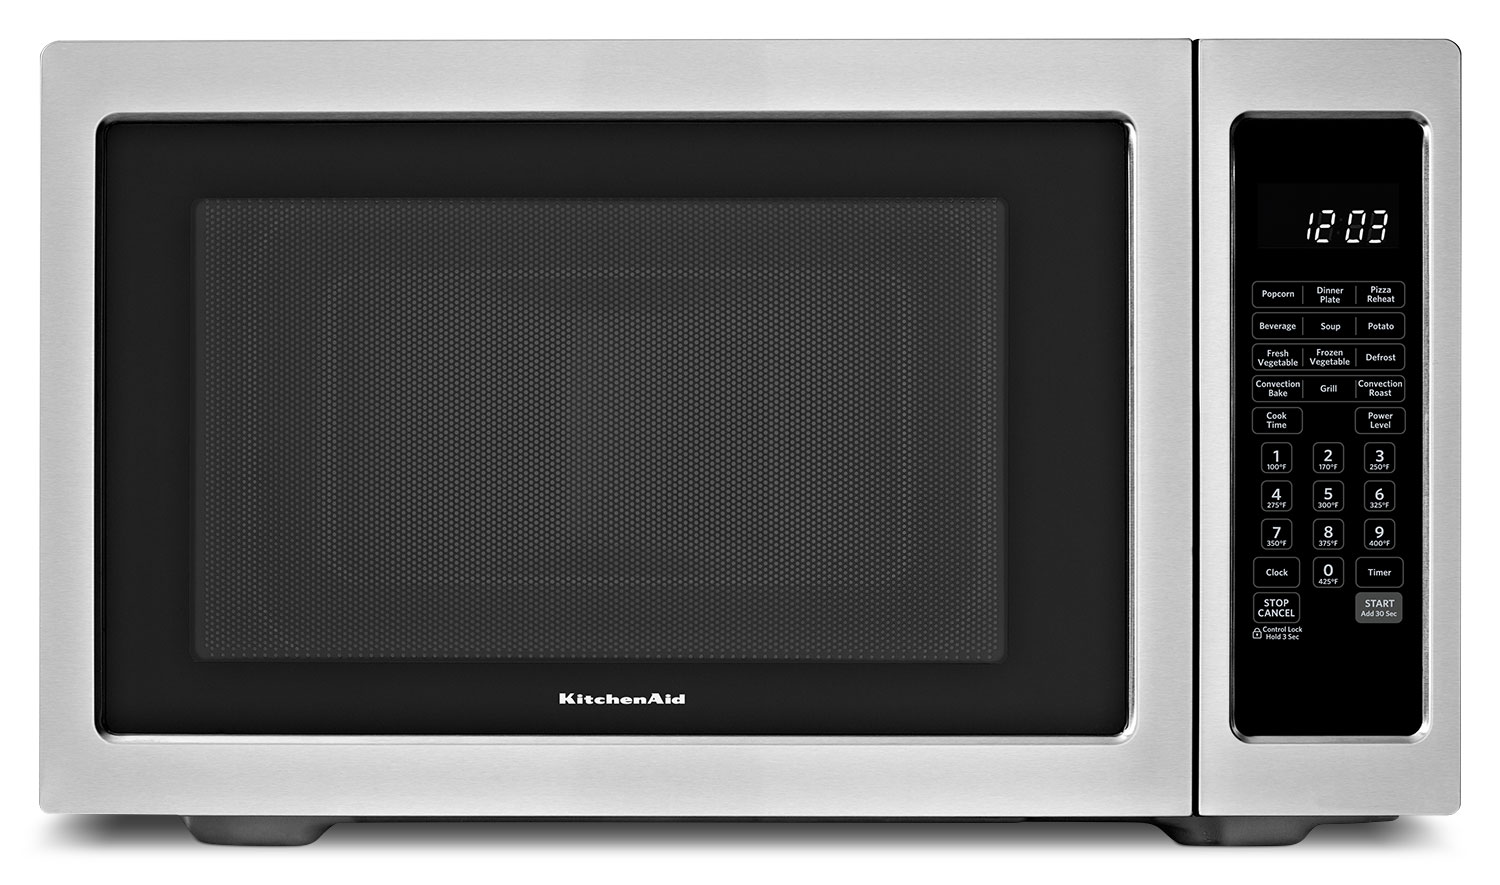 Cooking Products - KitchenAid Stainless Steel Countertop Convection Microwave (1.5 Cu. Ft.) - KCMC1575BSS